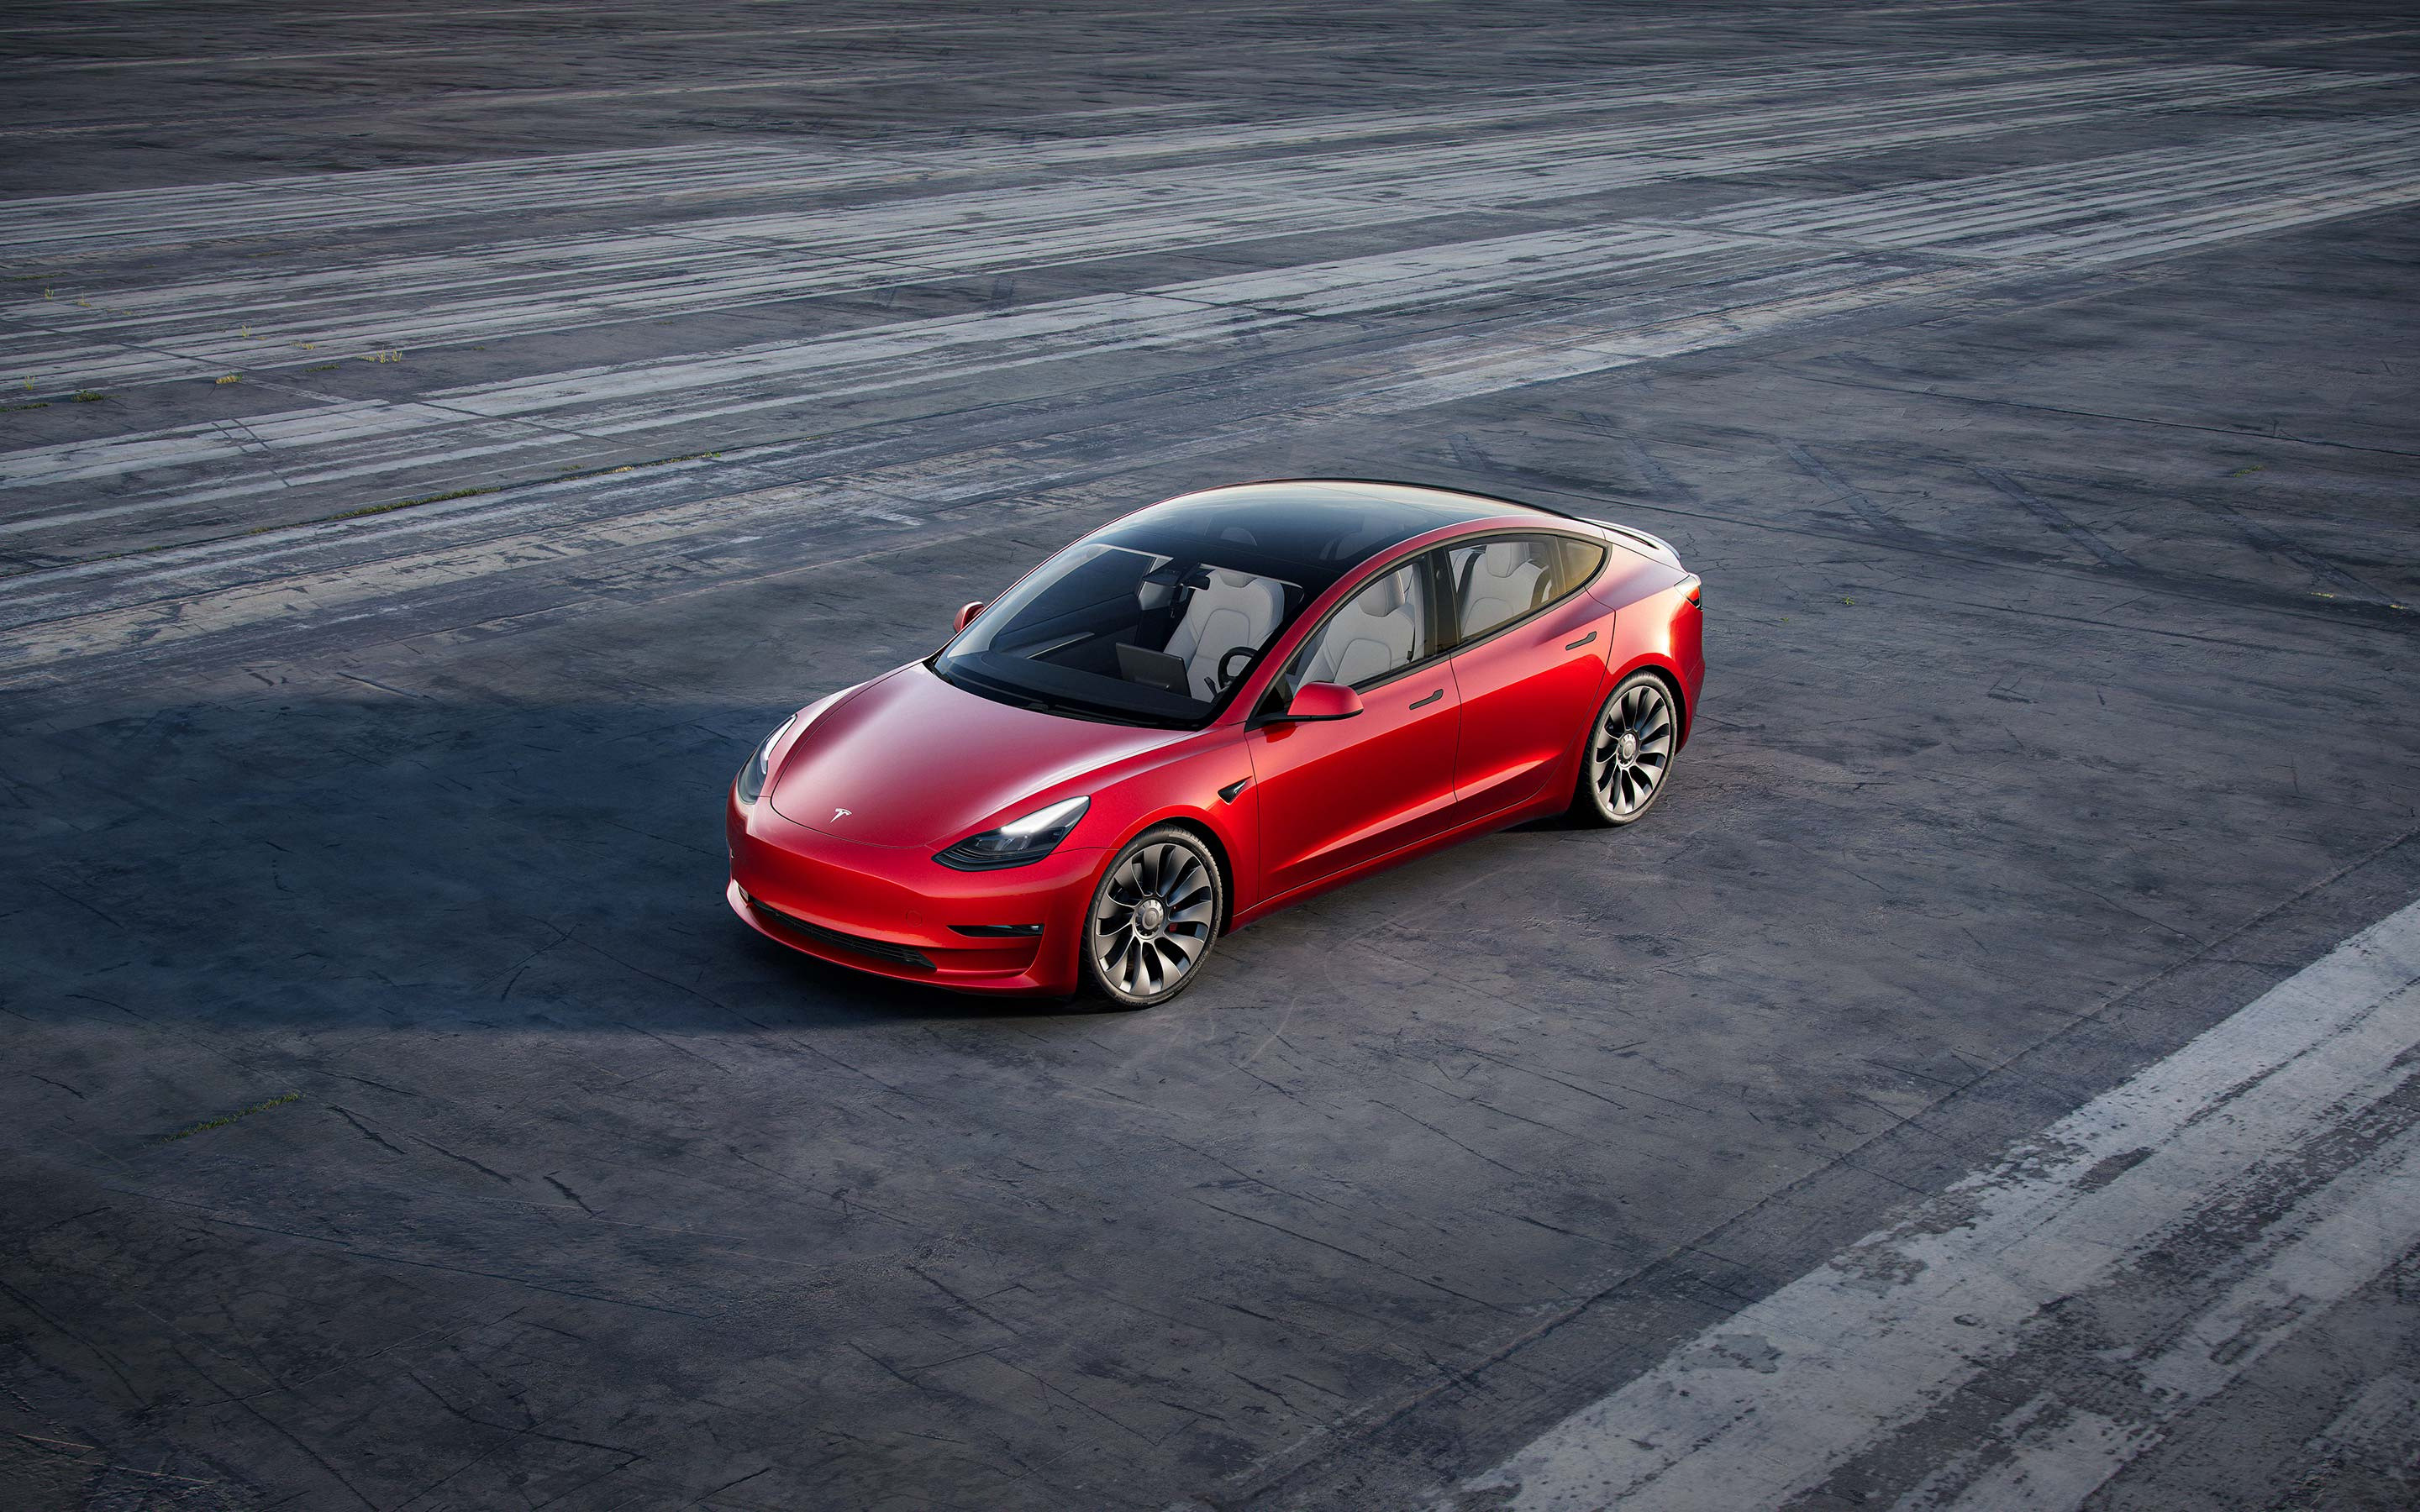 Birds-eye view of red Model 3 on gray asphalt